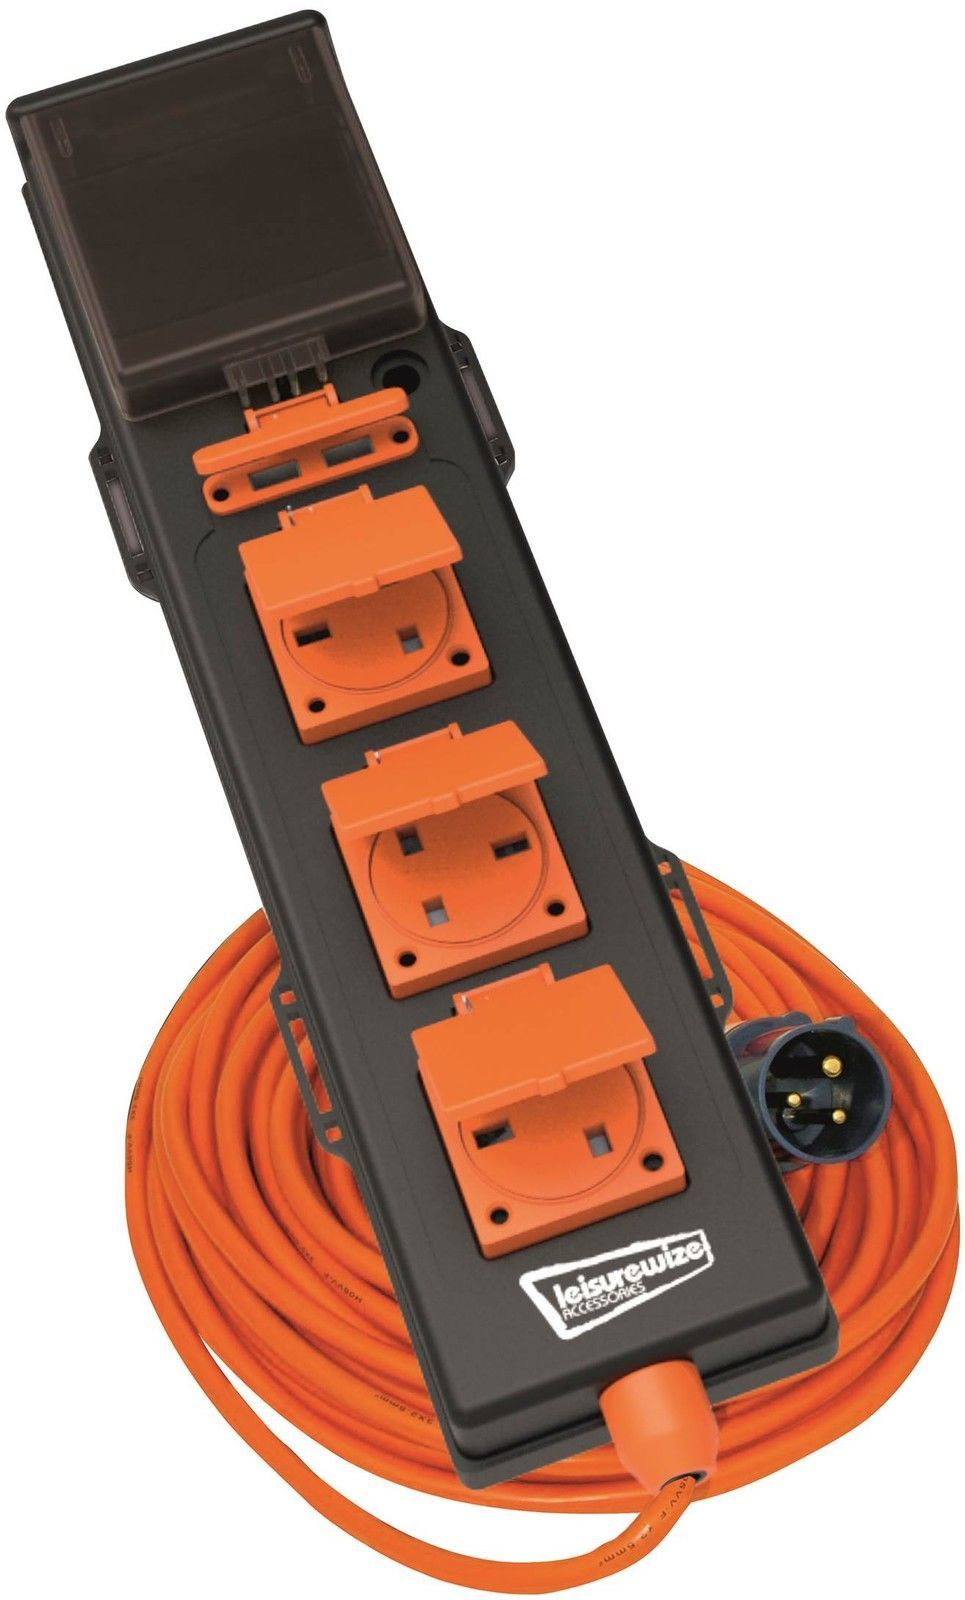 Leisurewize 5 Way -240V Mobile Mains Unit RCD 5-in-1 Hook Up Cable ...